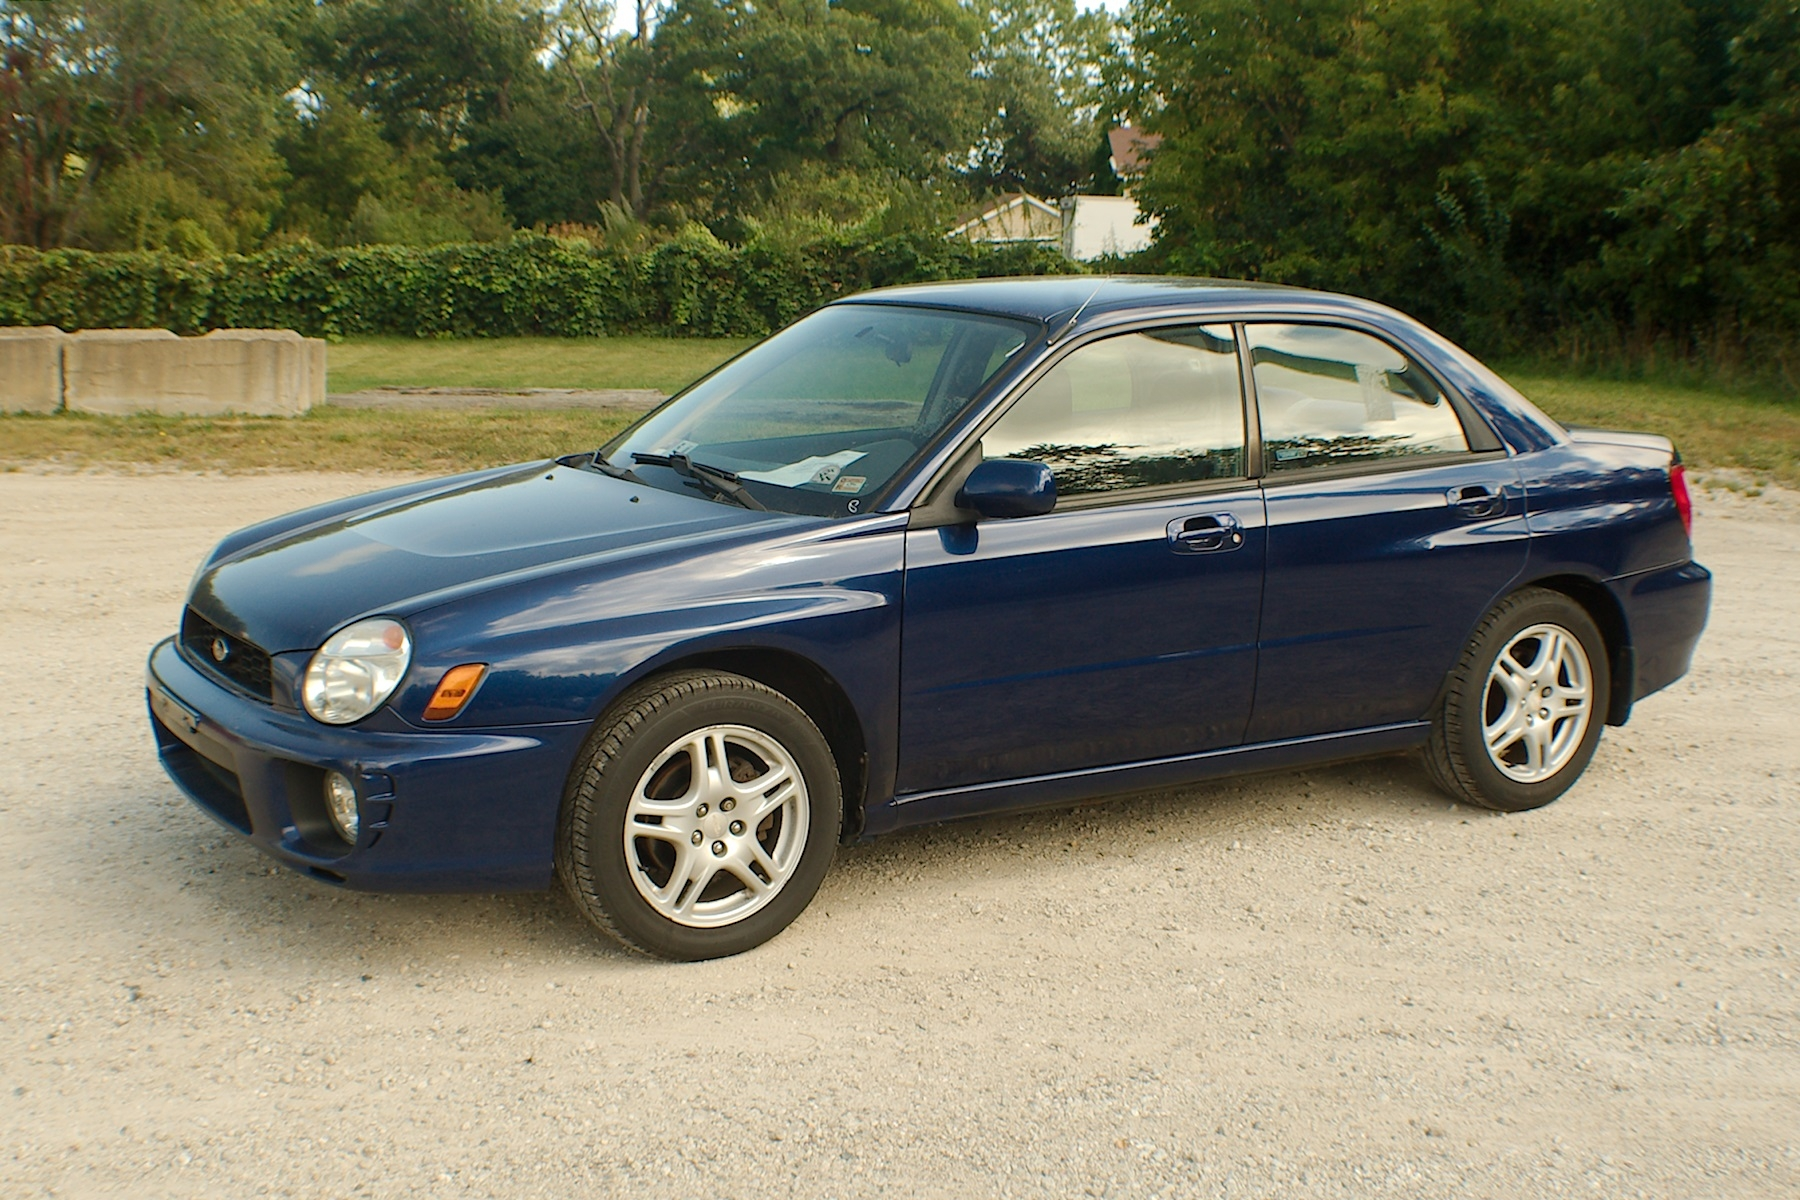 2003 Subaru Impreza Blue AWD Sedan Wagon Used Car Sale Antioch Zion Waukegan Lake County Illinois